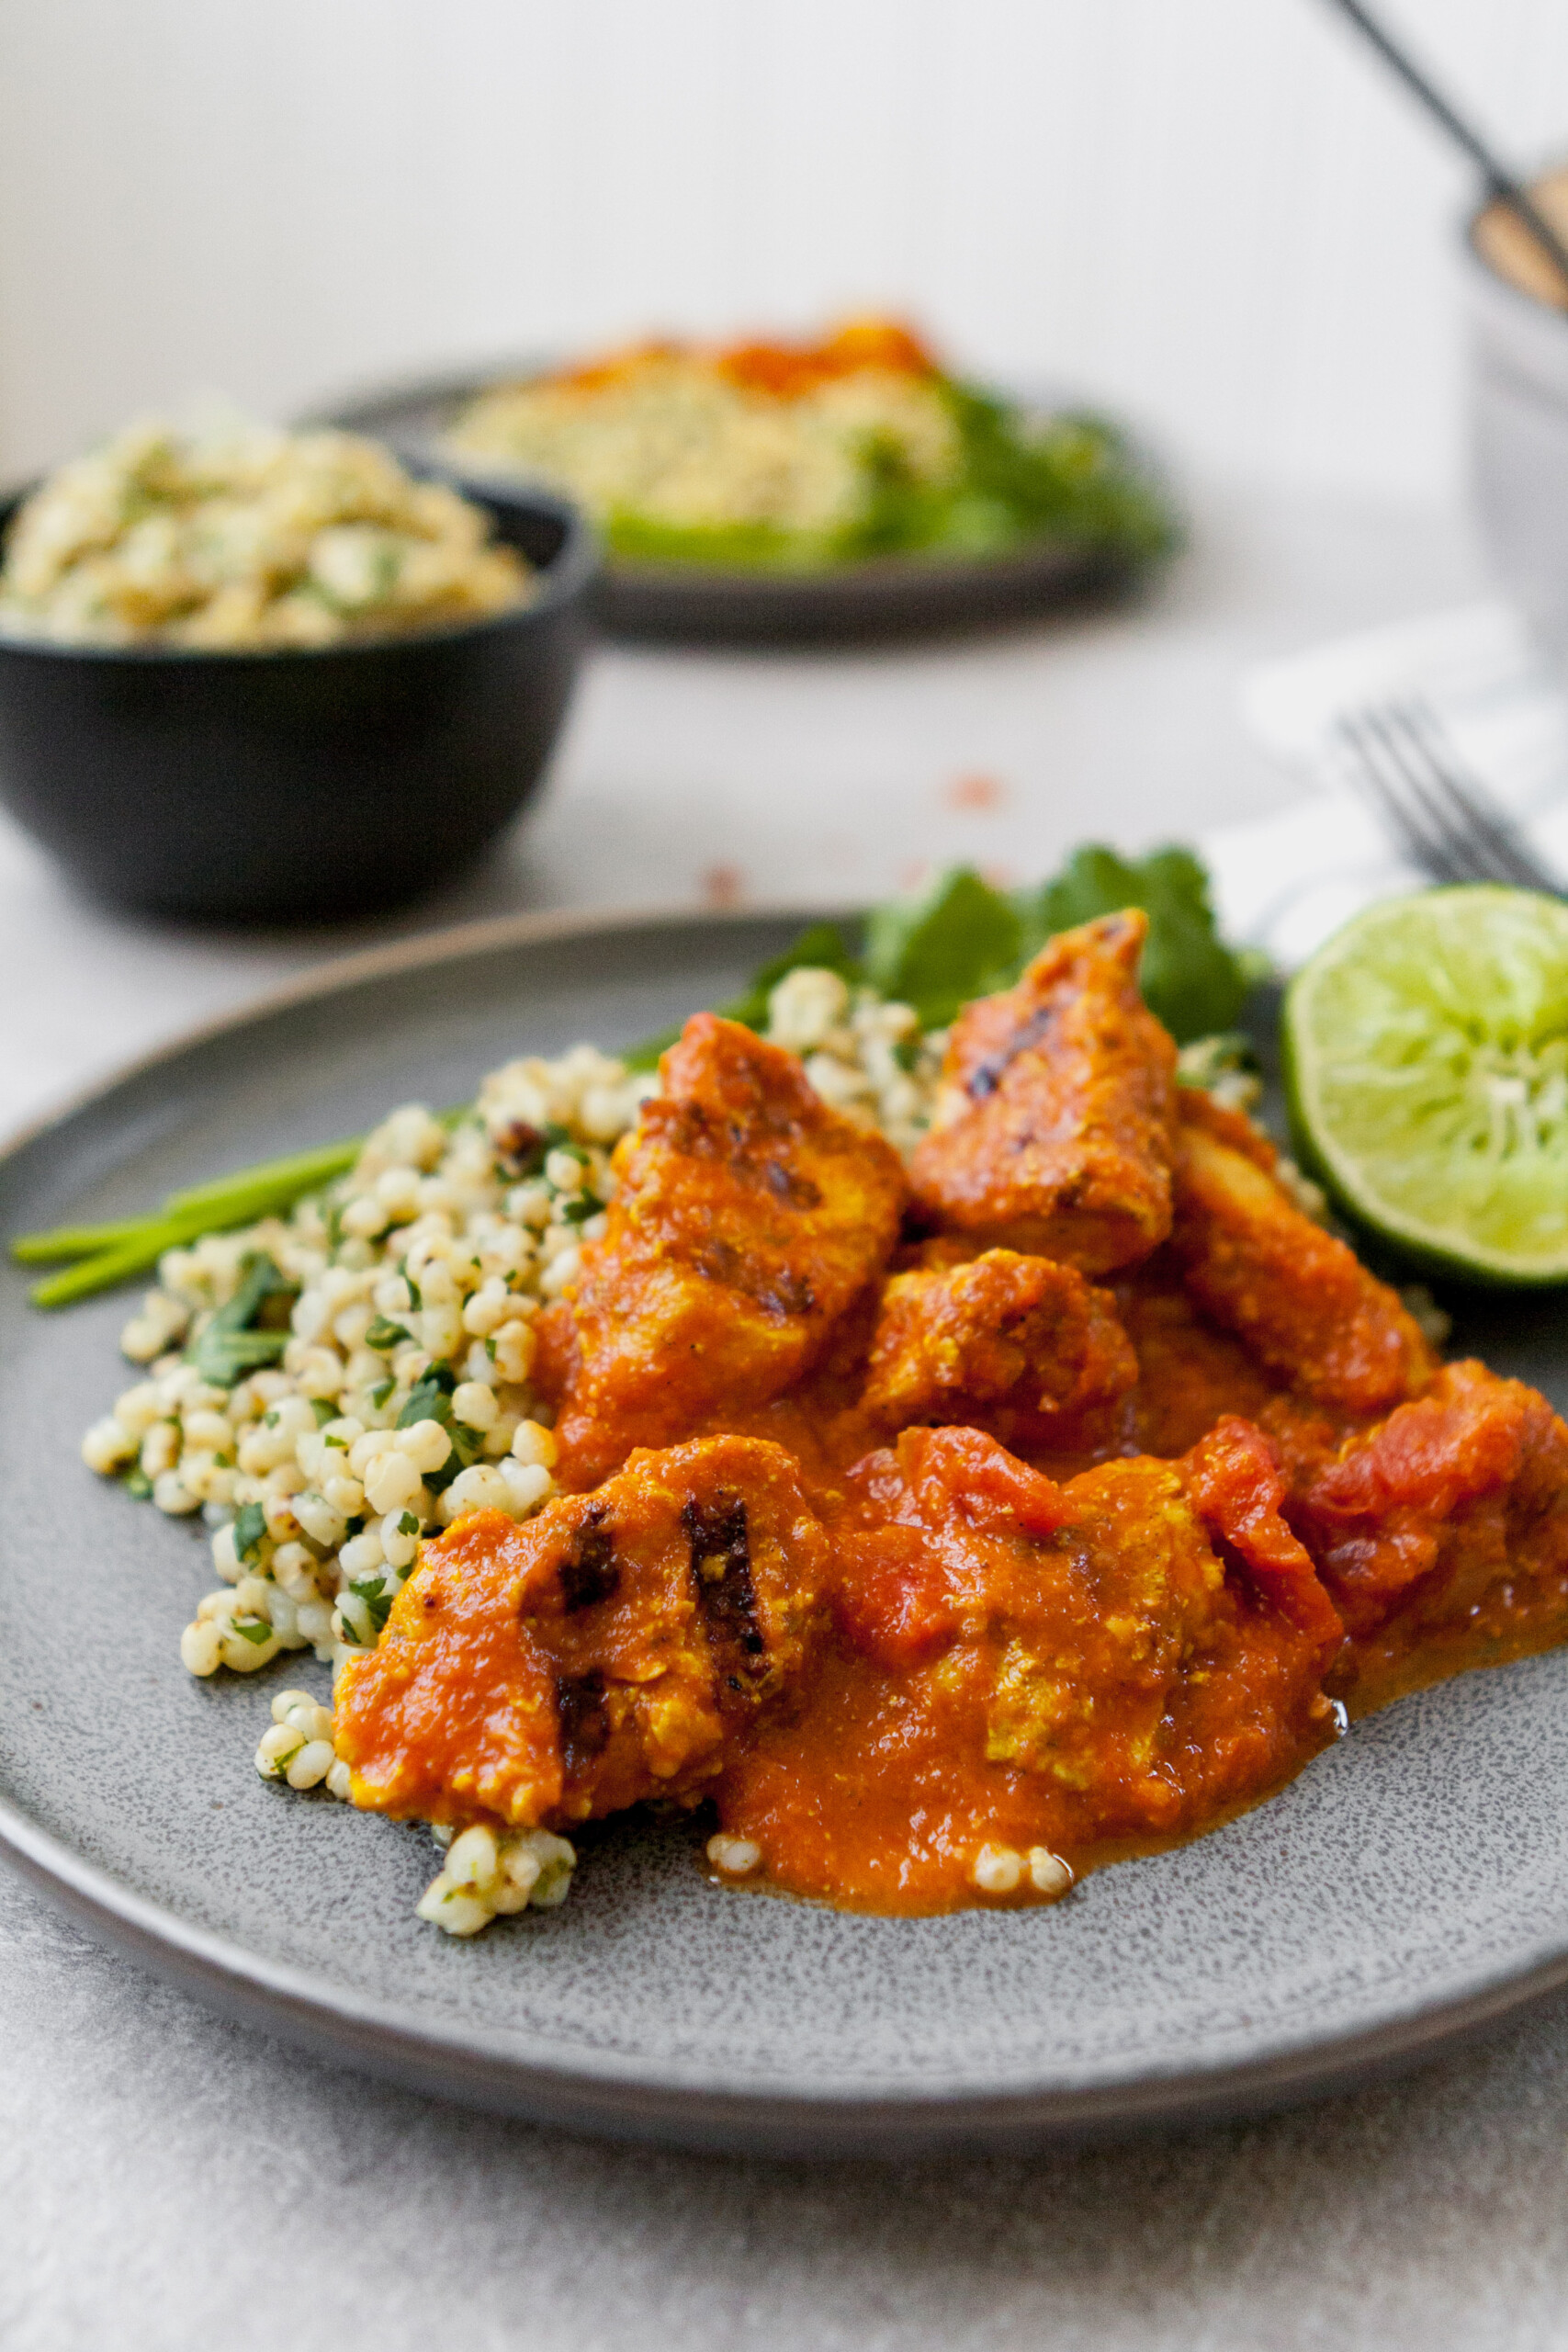 This lightened Chicken Tikka Masala is full-flavored, healthy, and even a great make ahead meal. Atop a bed of cilantro-lime sorghum, this is a classic, reinvented.   from Lauren Grant of Zestful Kitchen